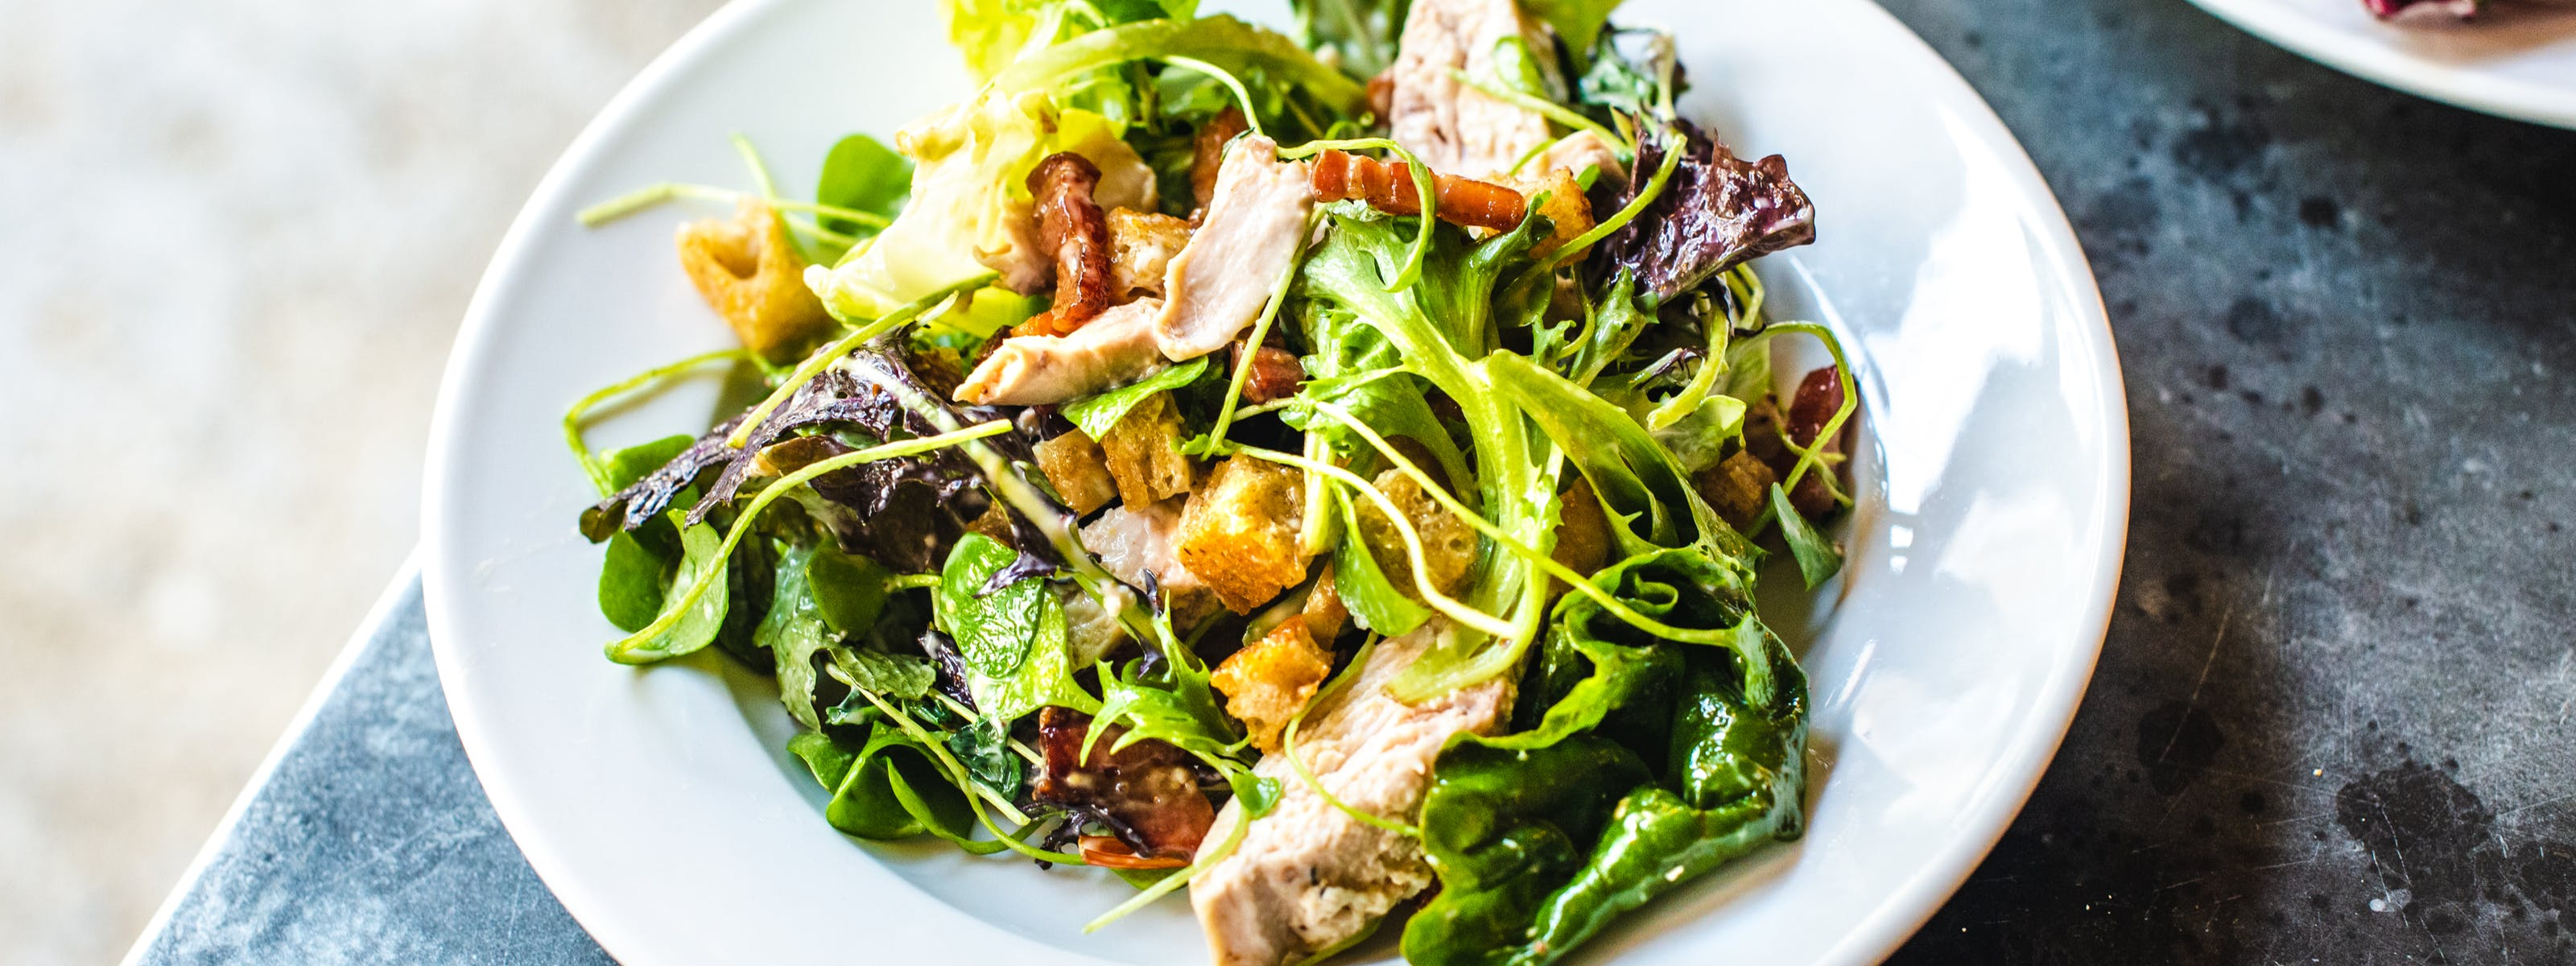 10 London Salads That Will Actually Bring You Joy - London - The Infatuation